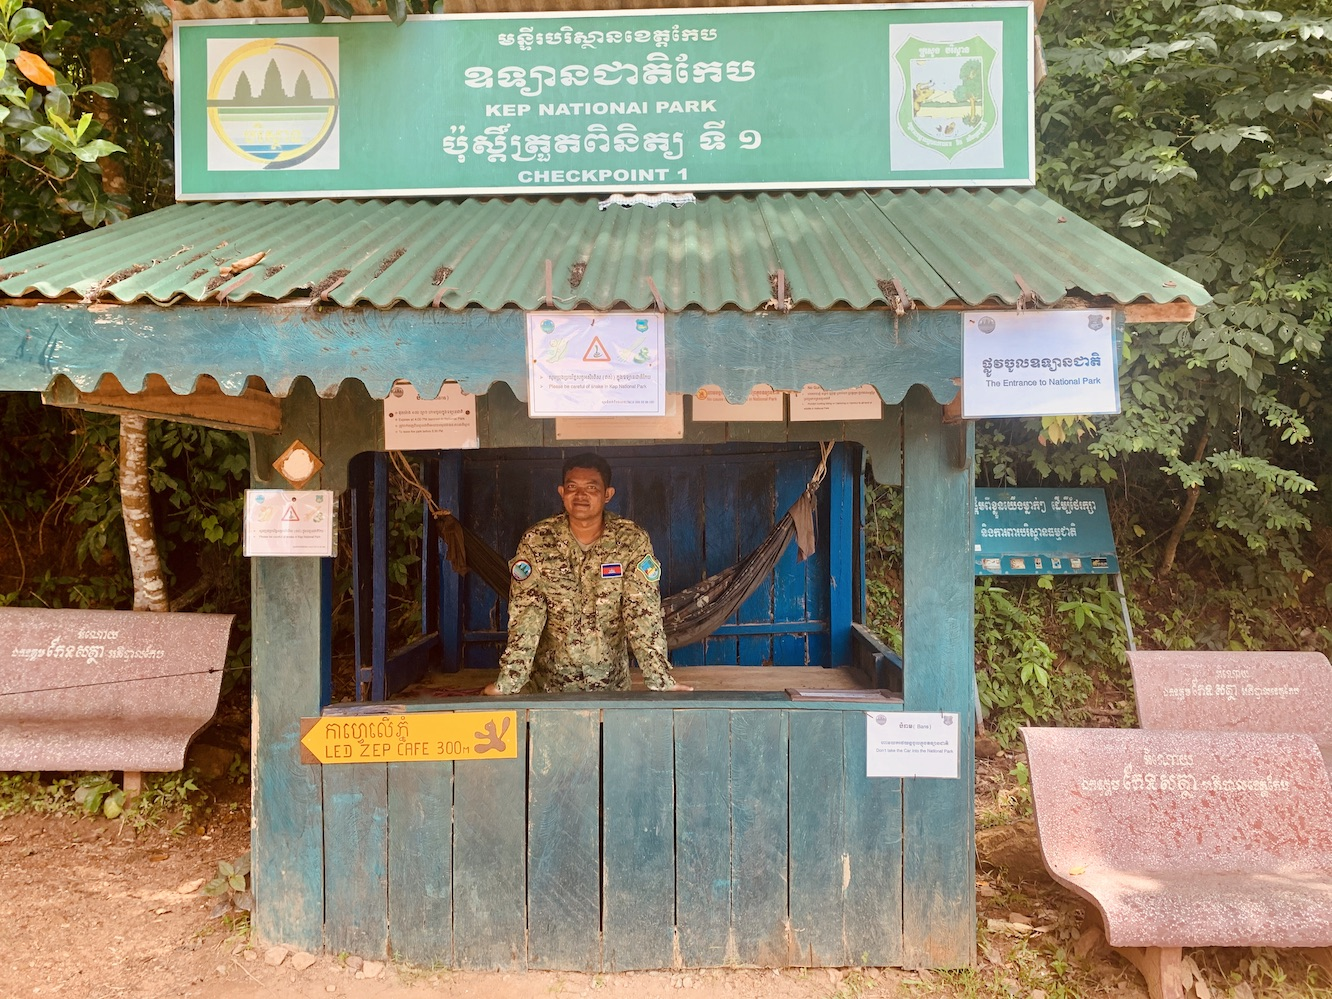 Kep National Park Checkpoint 1.